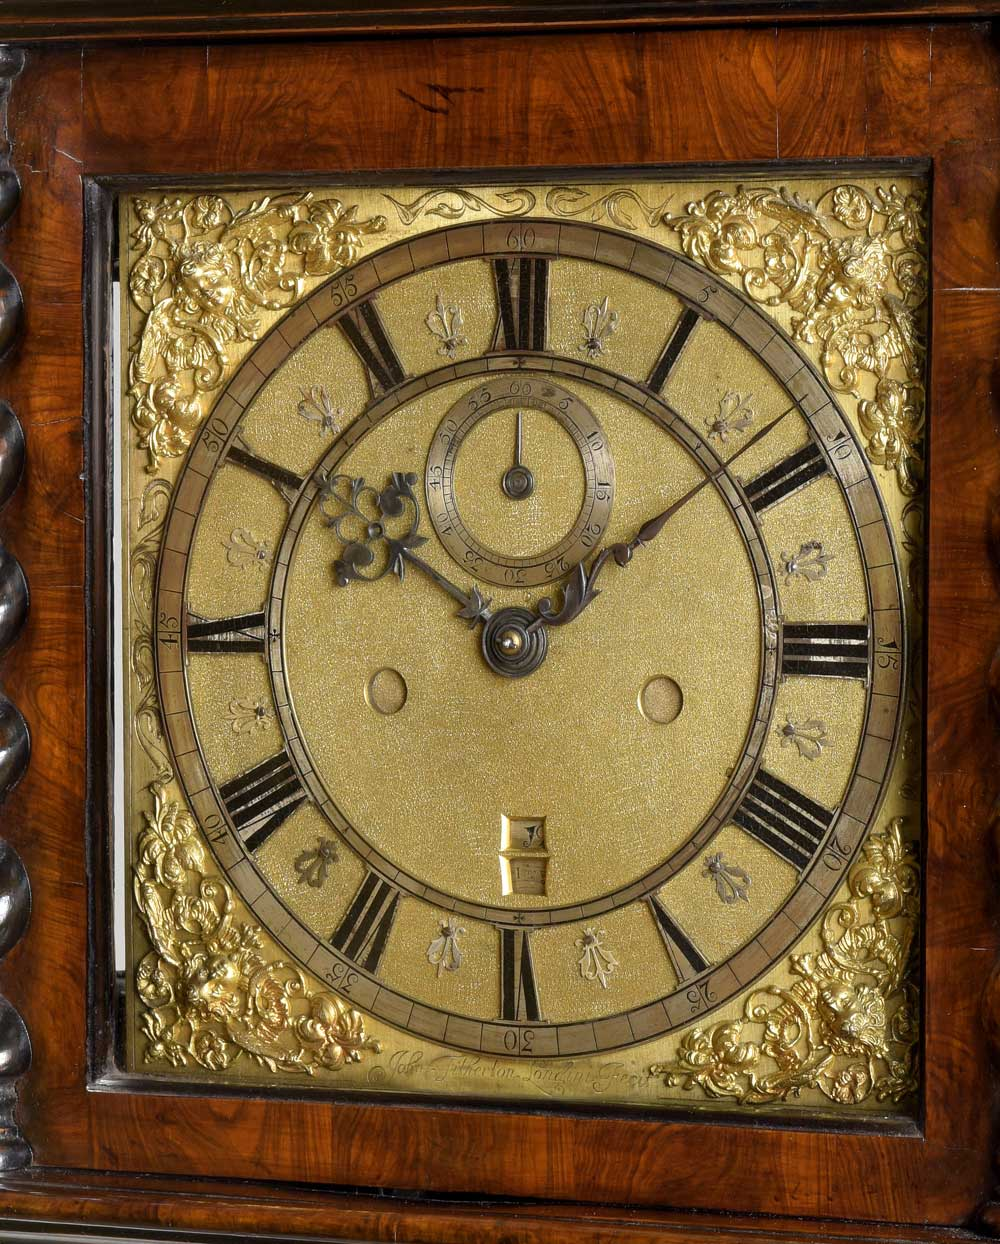 JOHN TITHERTON  LONDINI FECIT. A rare Charles II period olivewood and parquetry longcase clock.